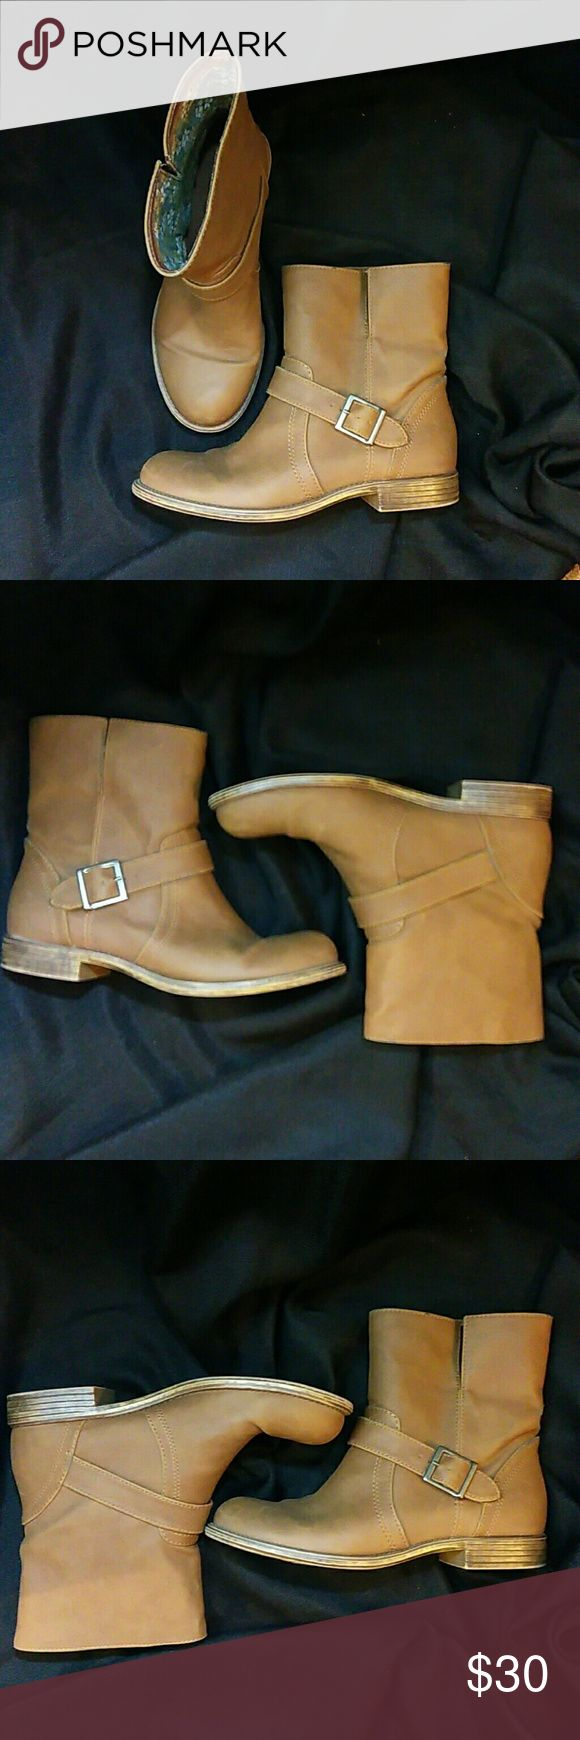 NWOT American Eagle Boots Dark tan boots are in excellent condition. No scuffs or marks. Wore only once. American Eagle Outfitters Shoes Ankle Boots & Booties